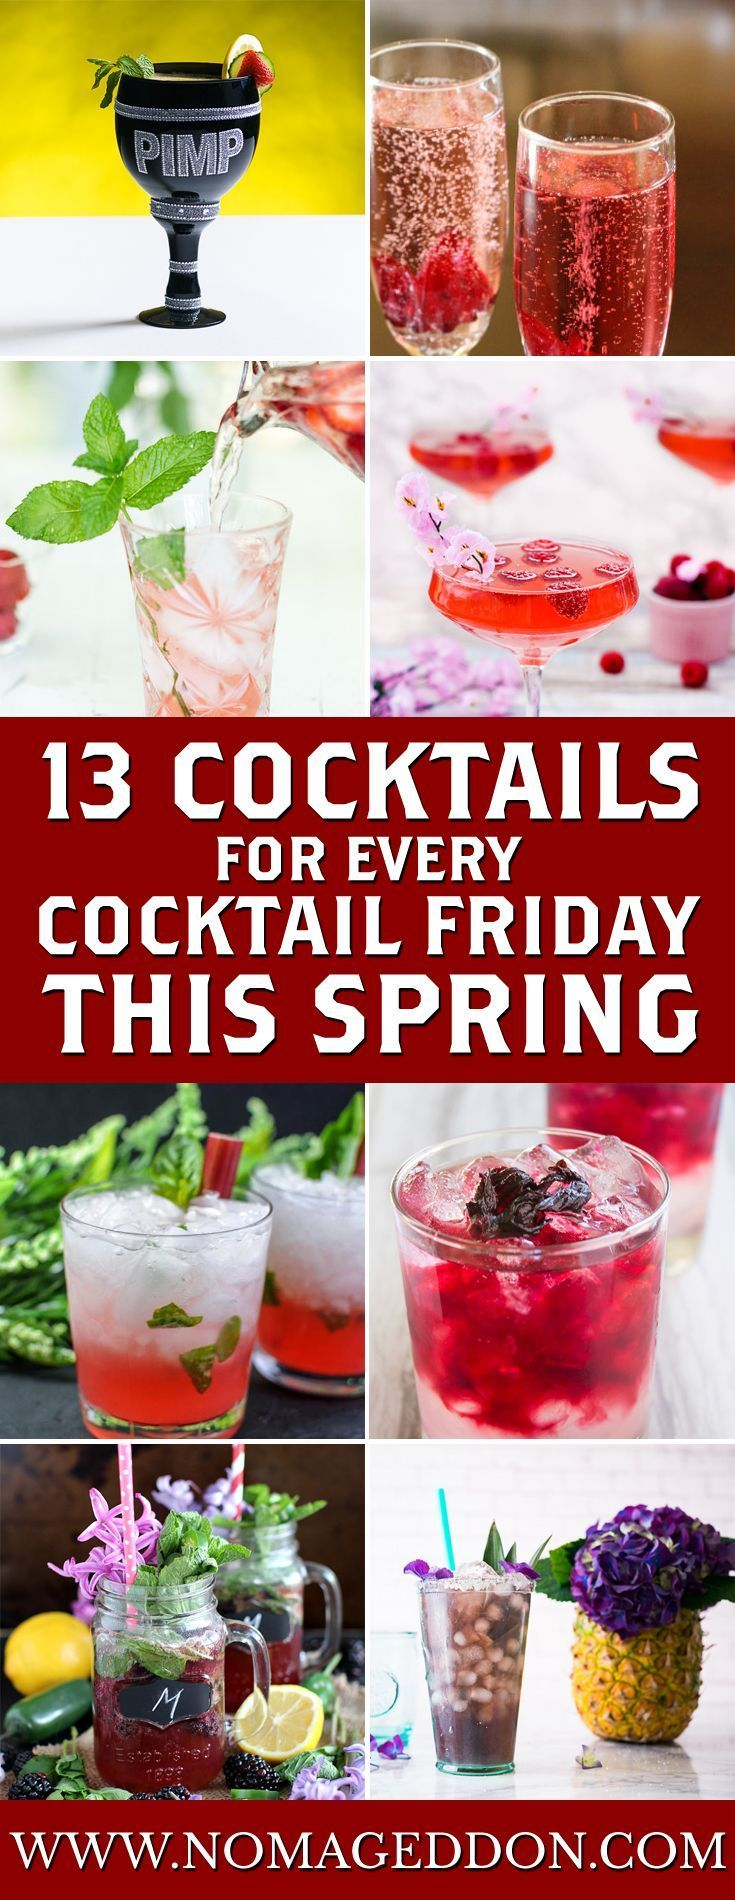 Every season has 13 weeks.  That means this spring has 13 cocktail Fridays and here are 13 drinks for you to sip under the blooming trees this spring.  We've got a Pimm's Cup In A Pimp Cup, Strawberry Mojito, Strawberry Basil Caipirinha, The Rhubasil Cocktail, Spiked Hibiscus Lemonade, Kombucha Lavendar Violette Vodka Cocktail, Cucumber Gin Elderflower Smash, Pear Hibiscus Brunch Cocktail, Raspberry Peach Champagne Cocktail, Patron Rosa Picante Margarita, Rosé Sangria, Lemon Jalapeño Roasted